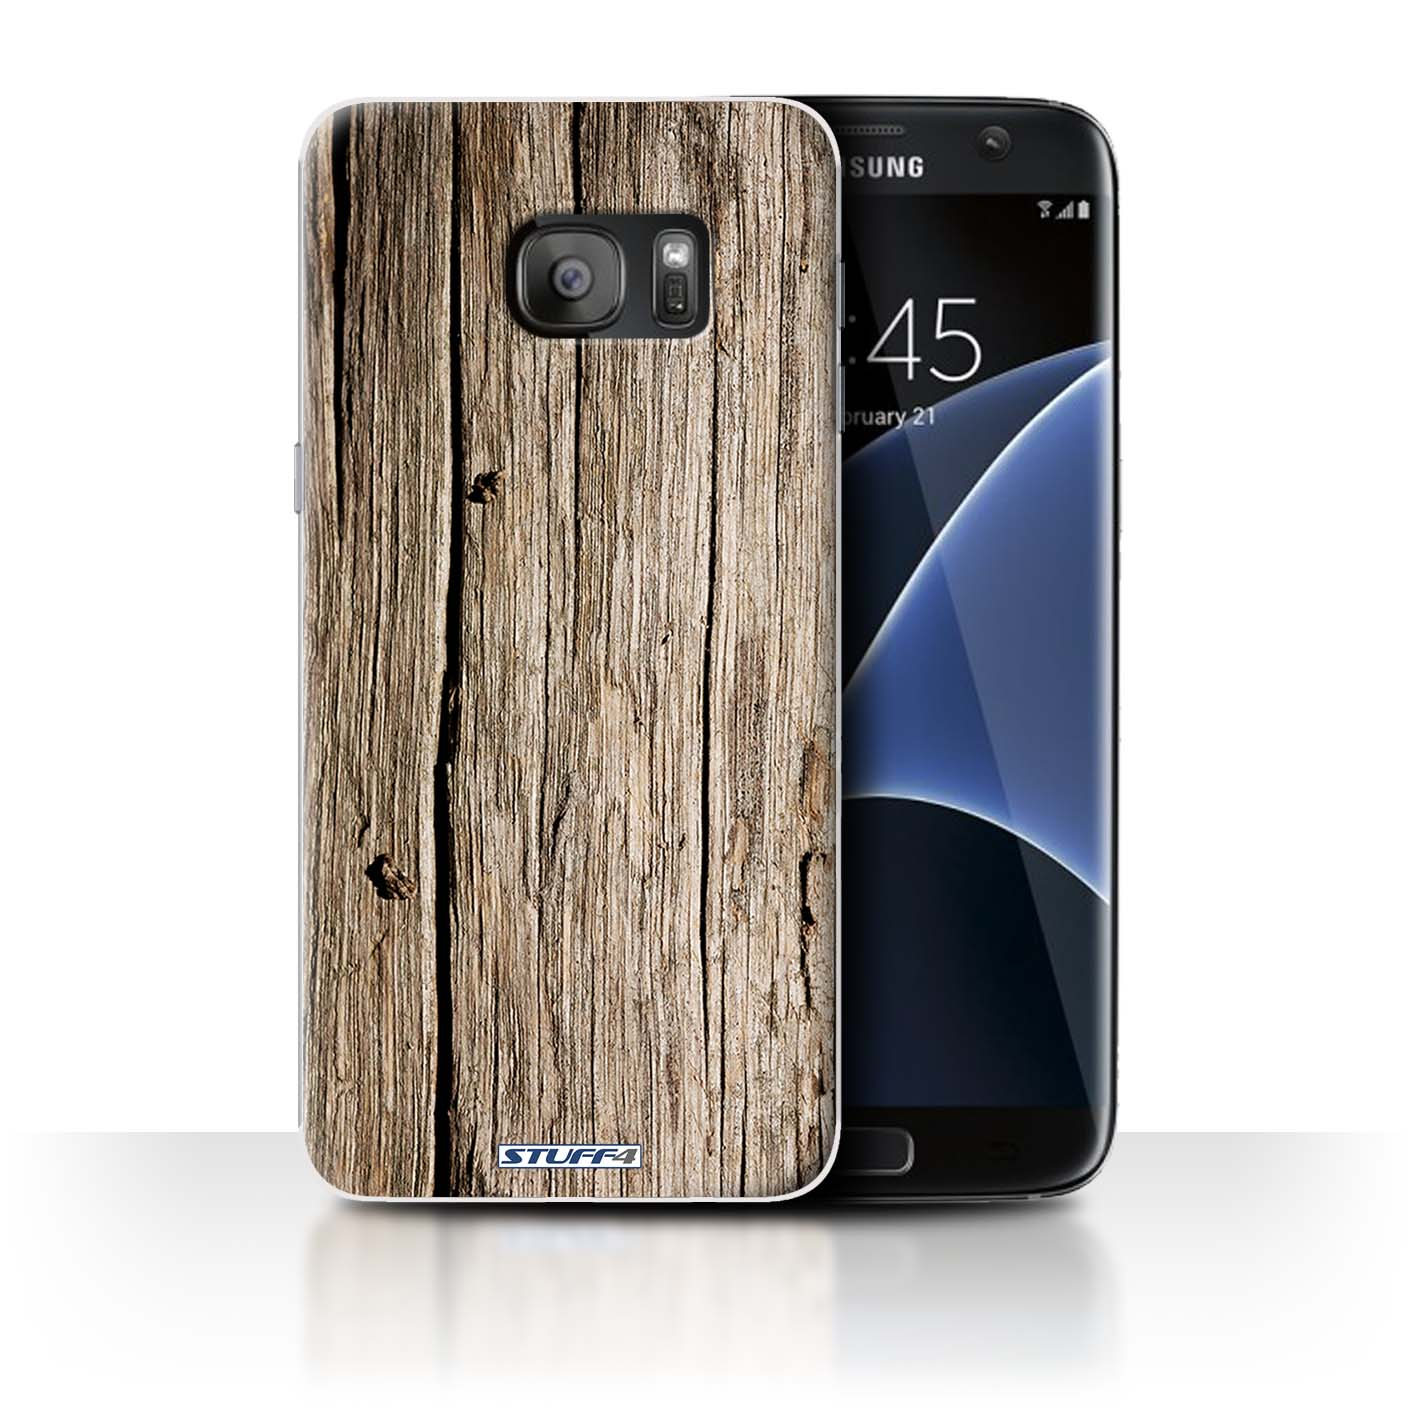 official photos d37a4 b4a4a Protective Hard Back Case for Samsung Galaxy S7 Edge/G935 / Wood Grain  Effect/Pattern Collection / Driftwood